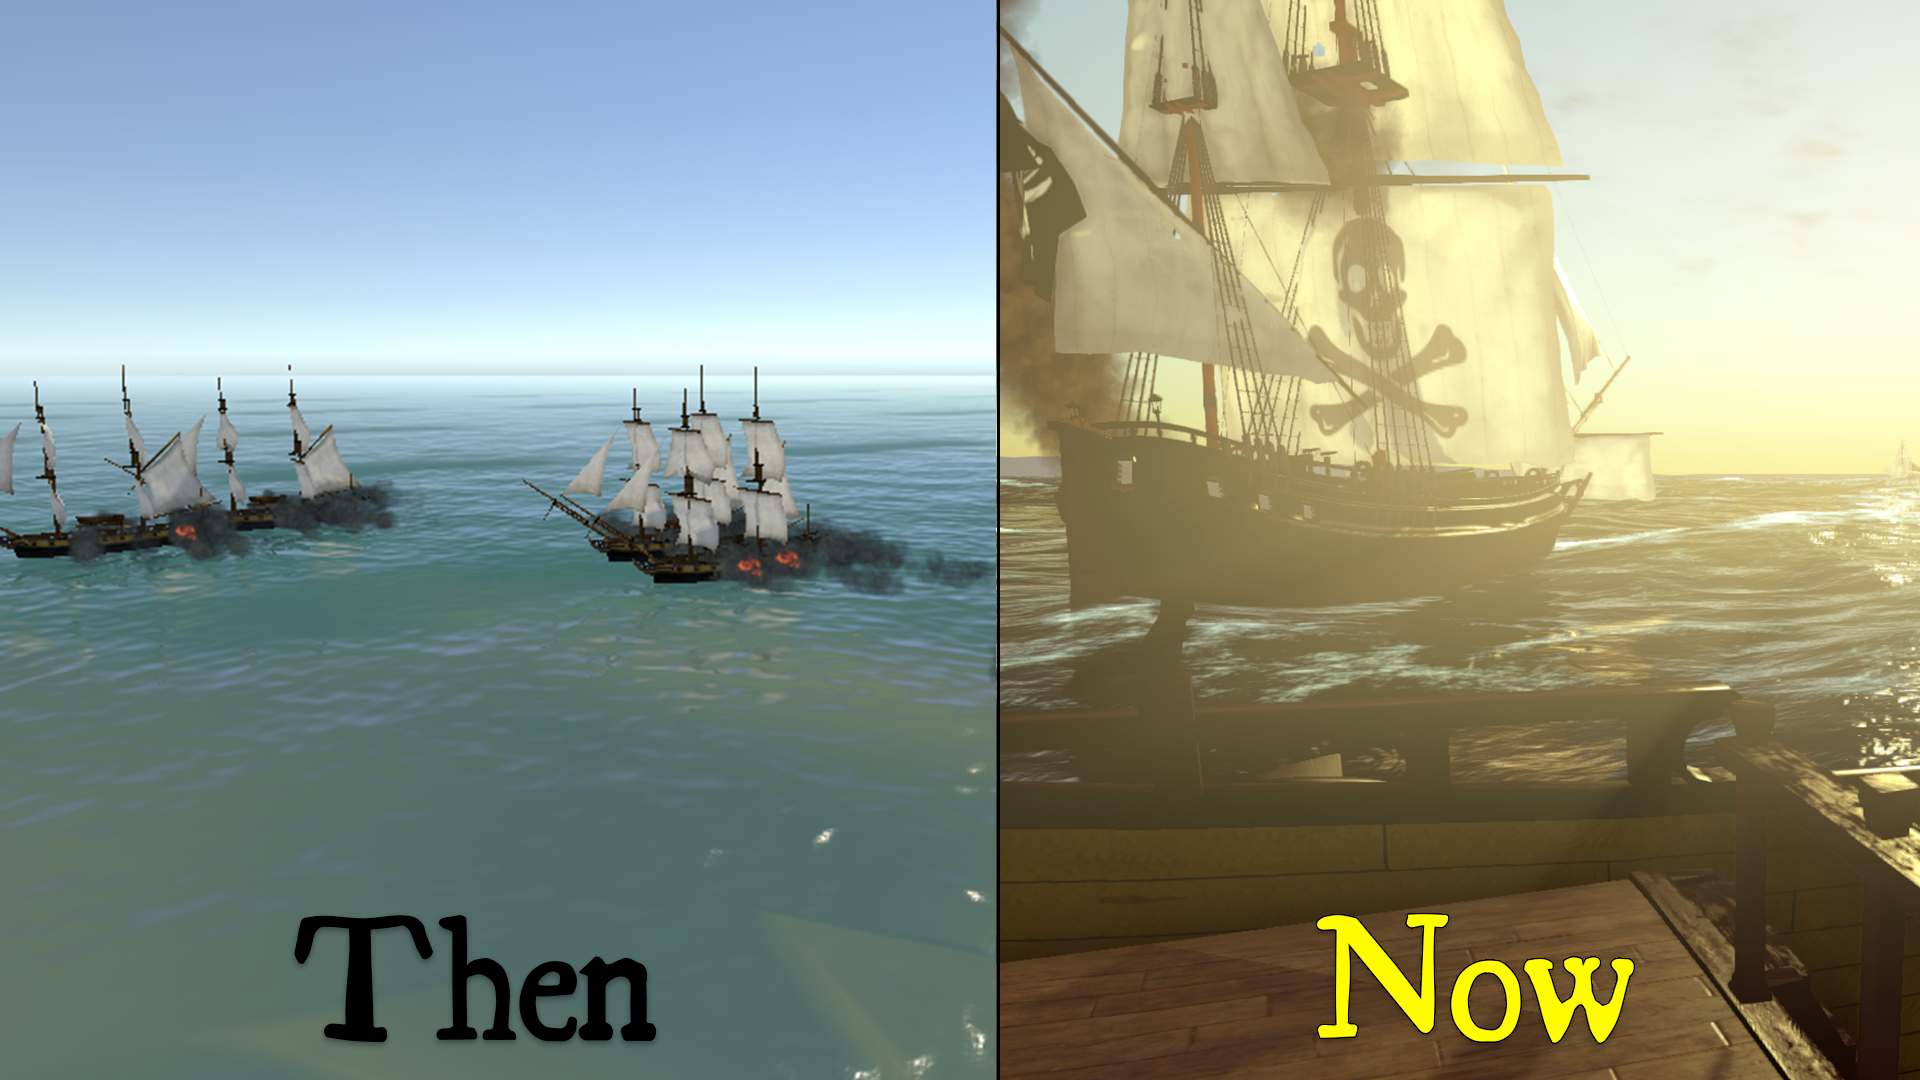 then_and_now_1 Naval Battle Game Comes to Life - End of Year Summary